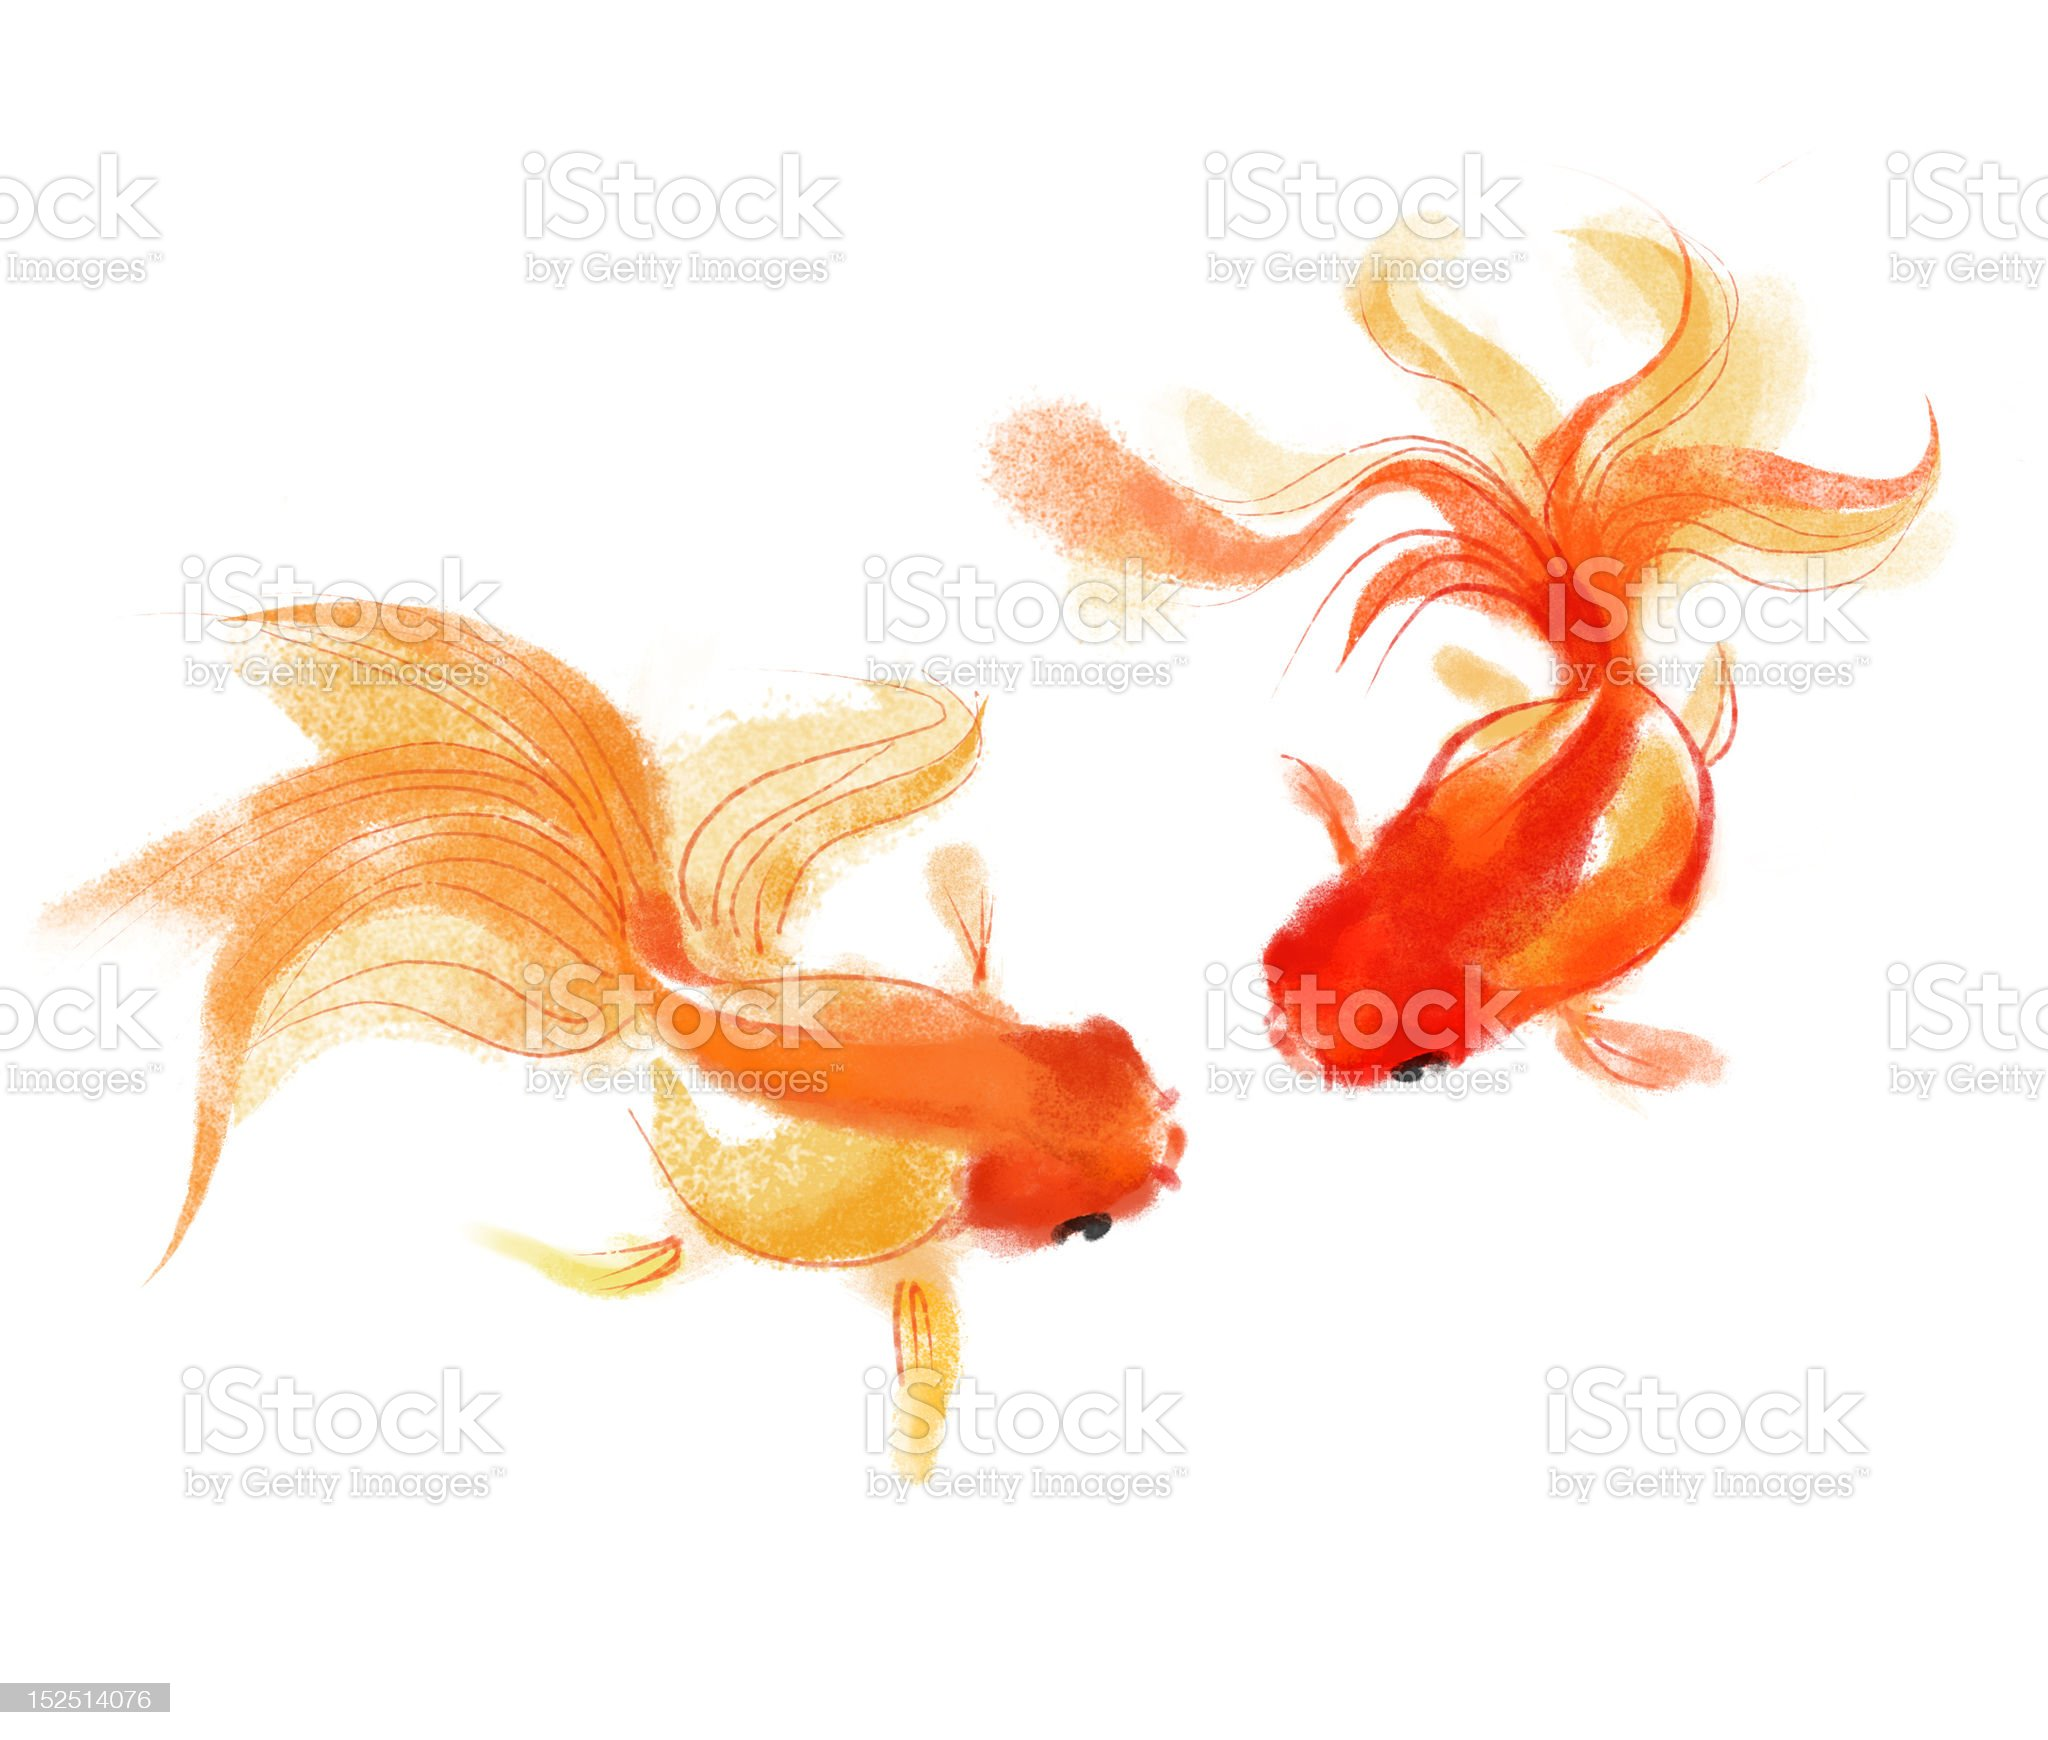 Goldfish royalty-free stock vector art